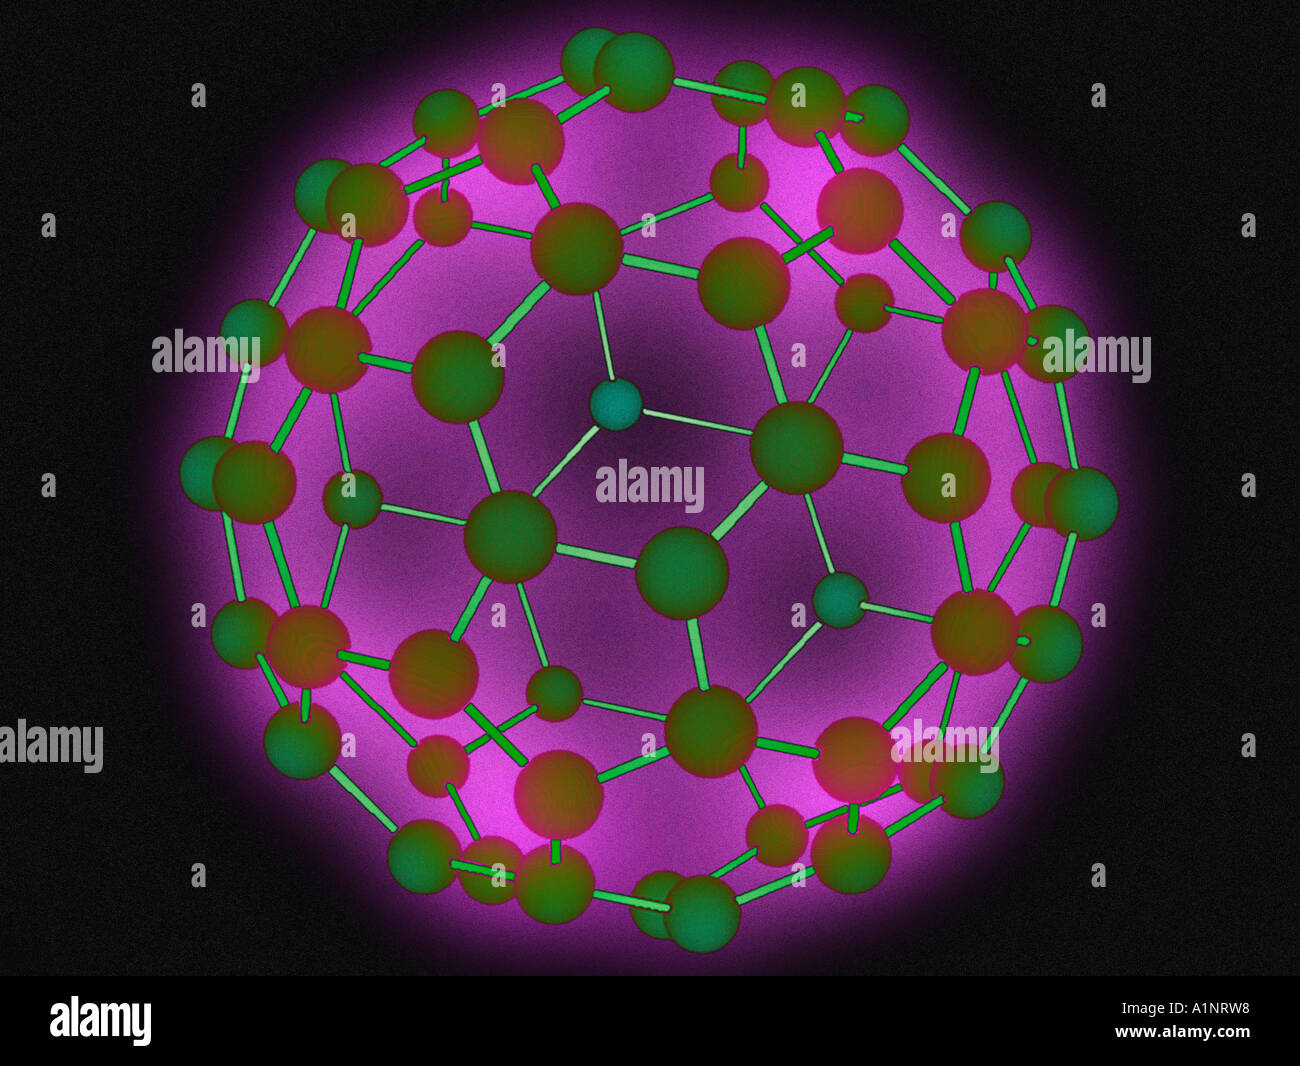 3D computer model of buckyball molecule - Stock Image